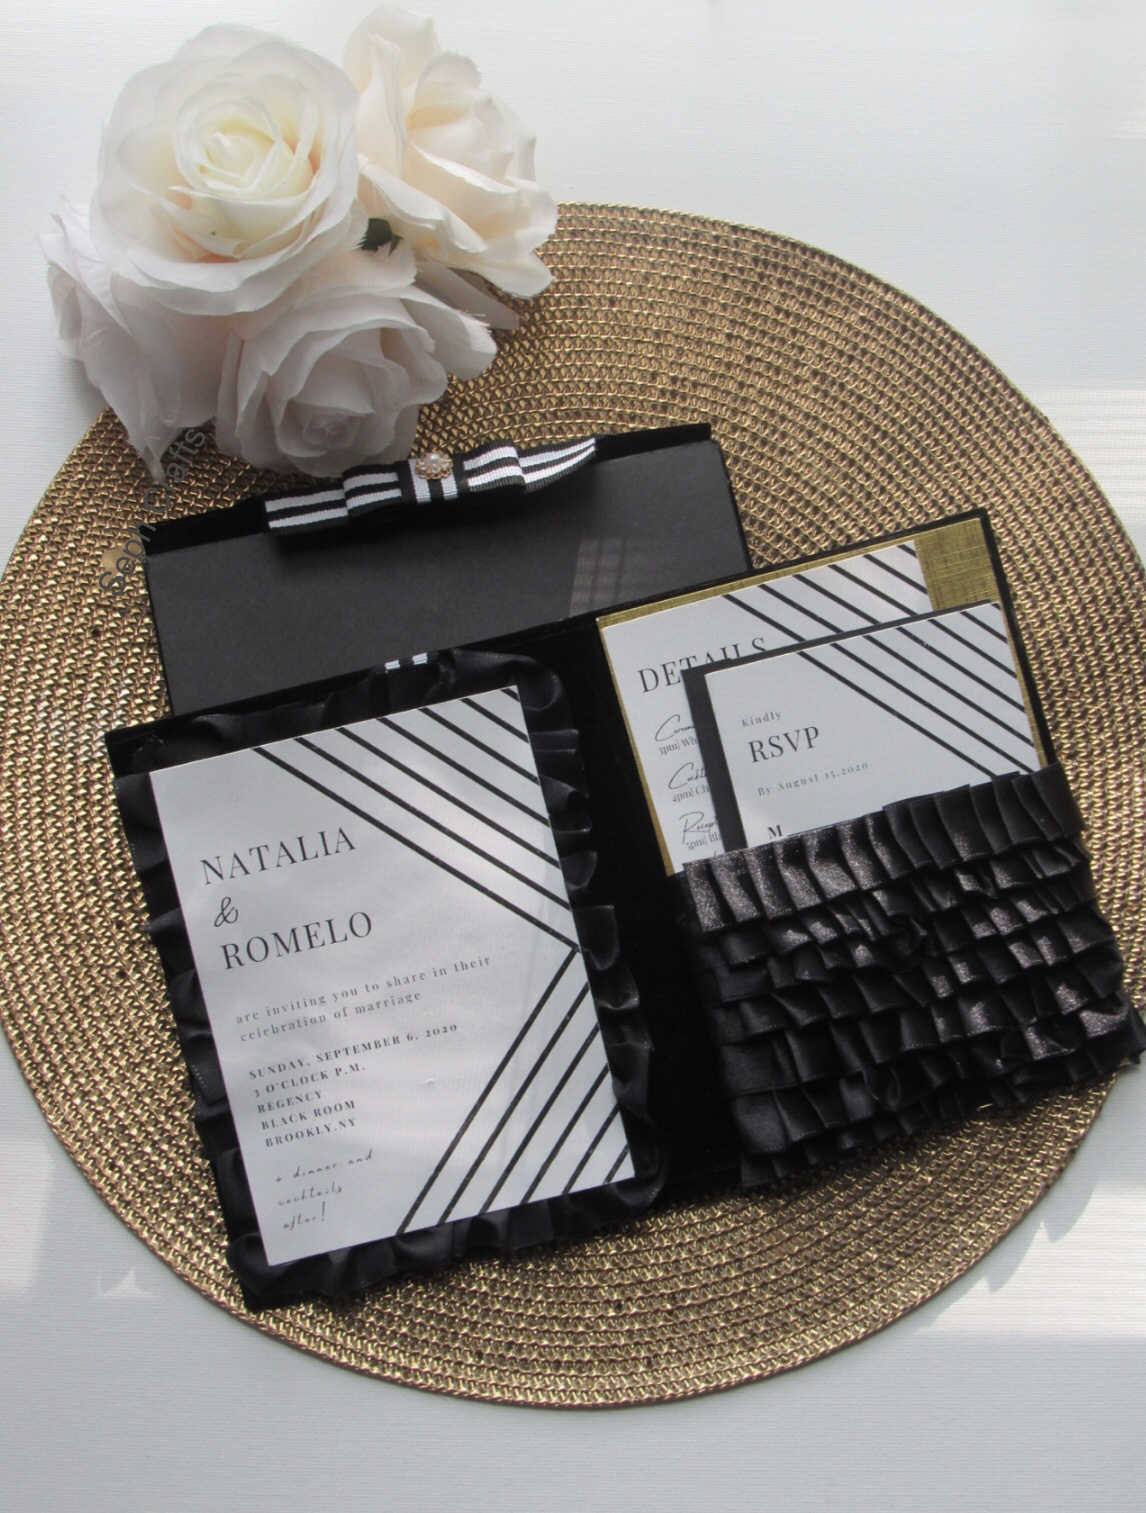 Black Tie Invitations